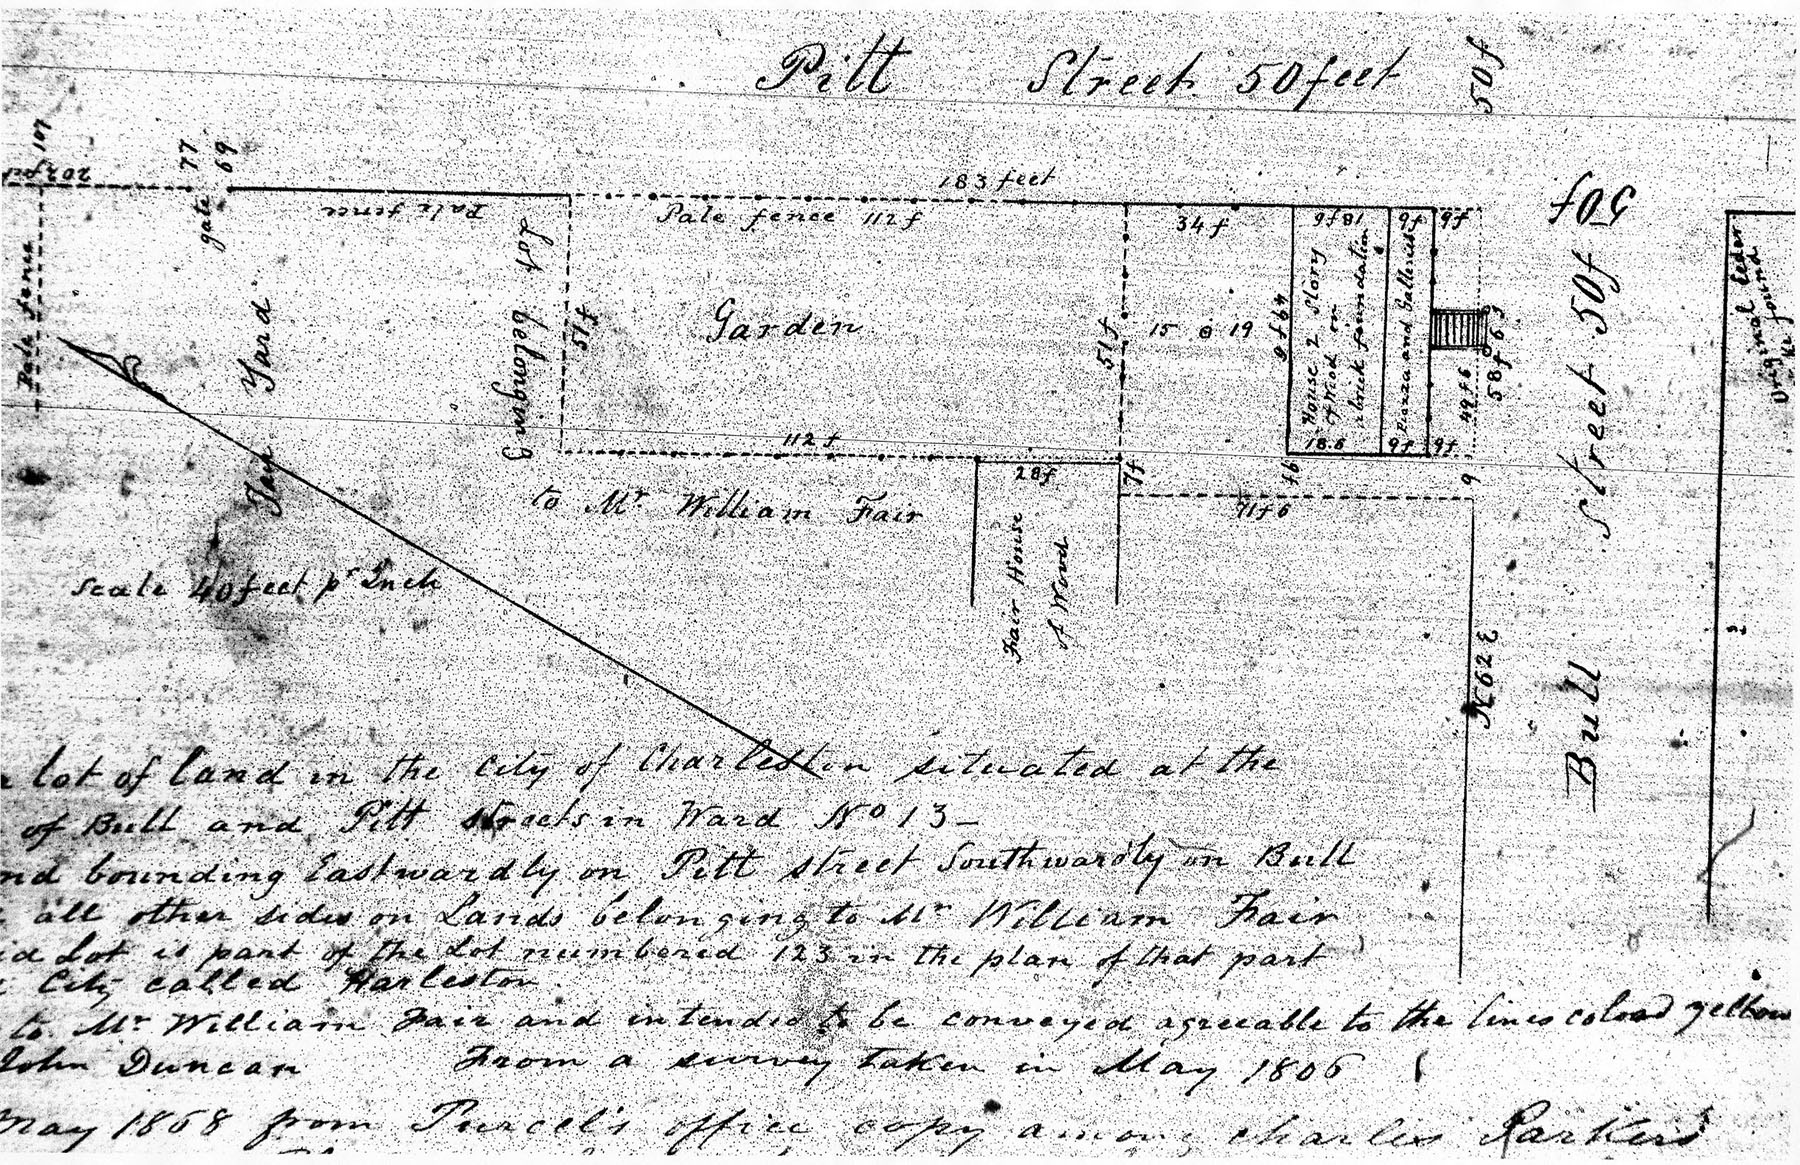 An 1858 copy of an 1806 plat of John Duncan's property at the northwest corner of Bull and Pitt Streets (McCrady Plat Collection No. 3657)